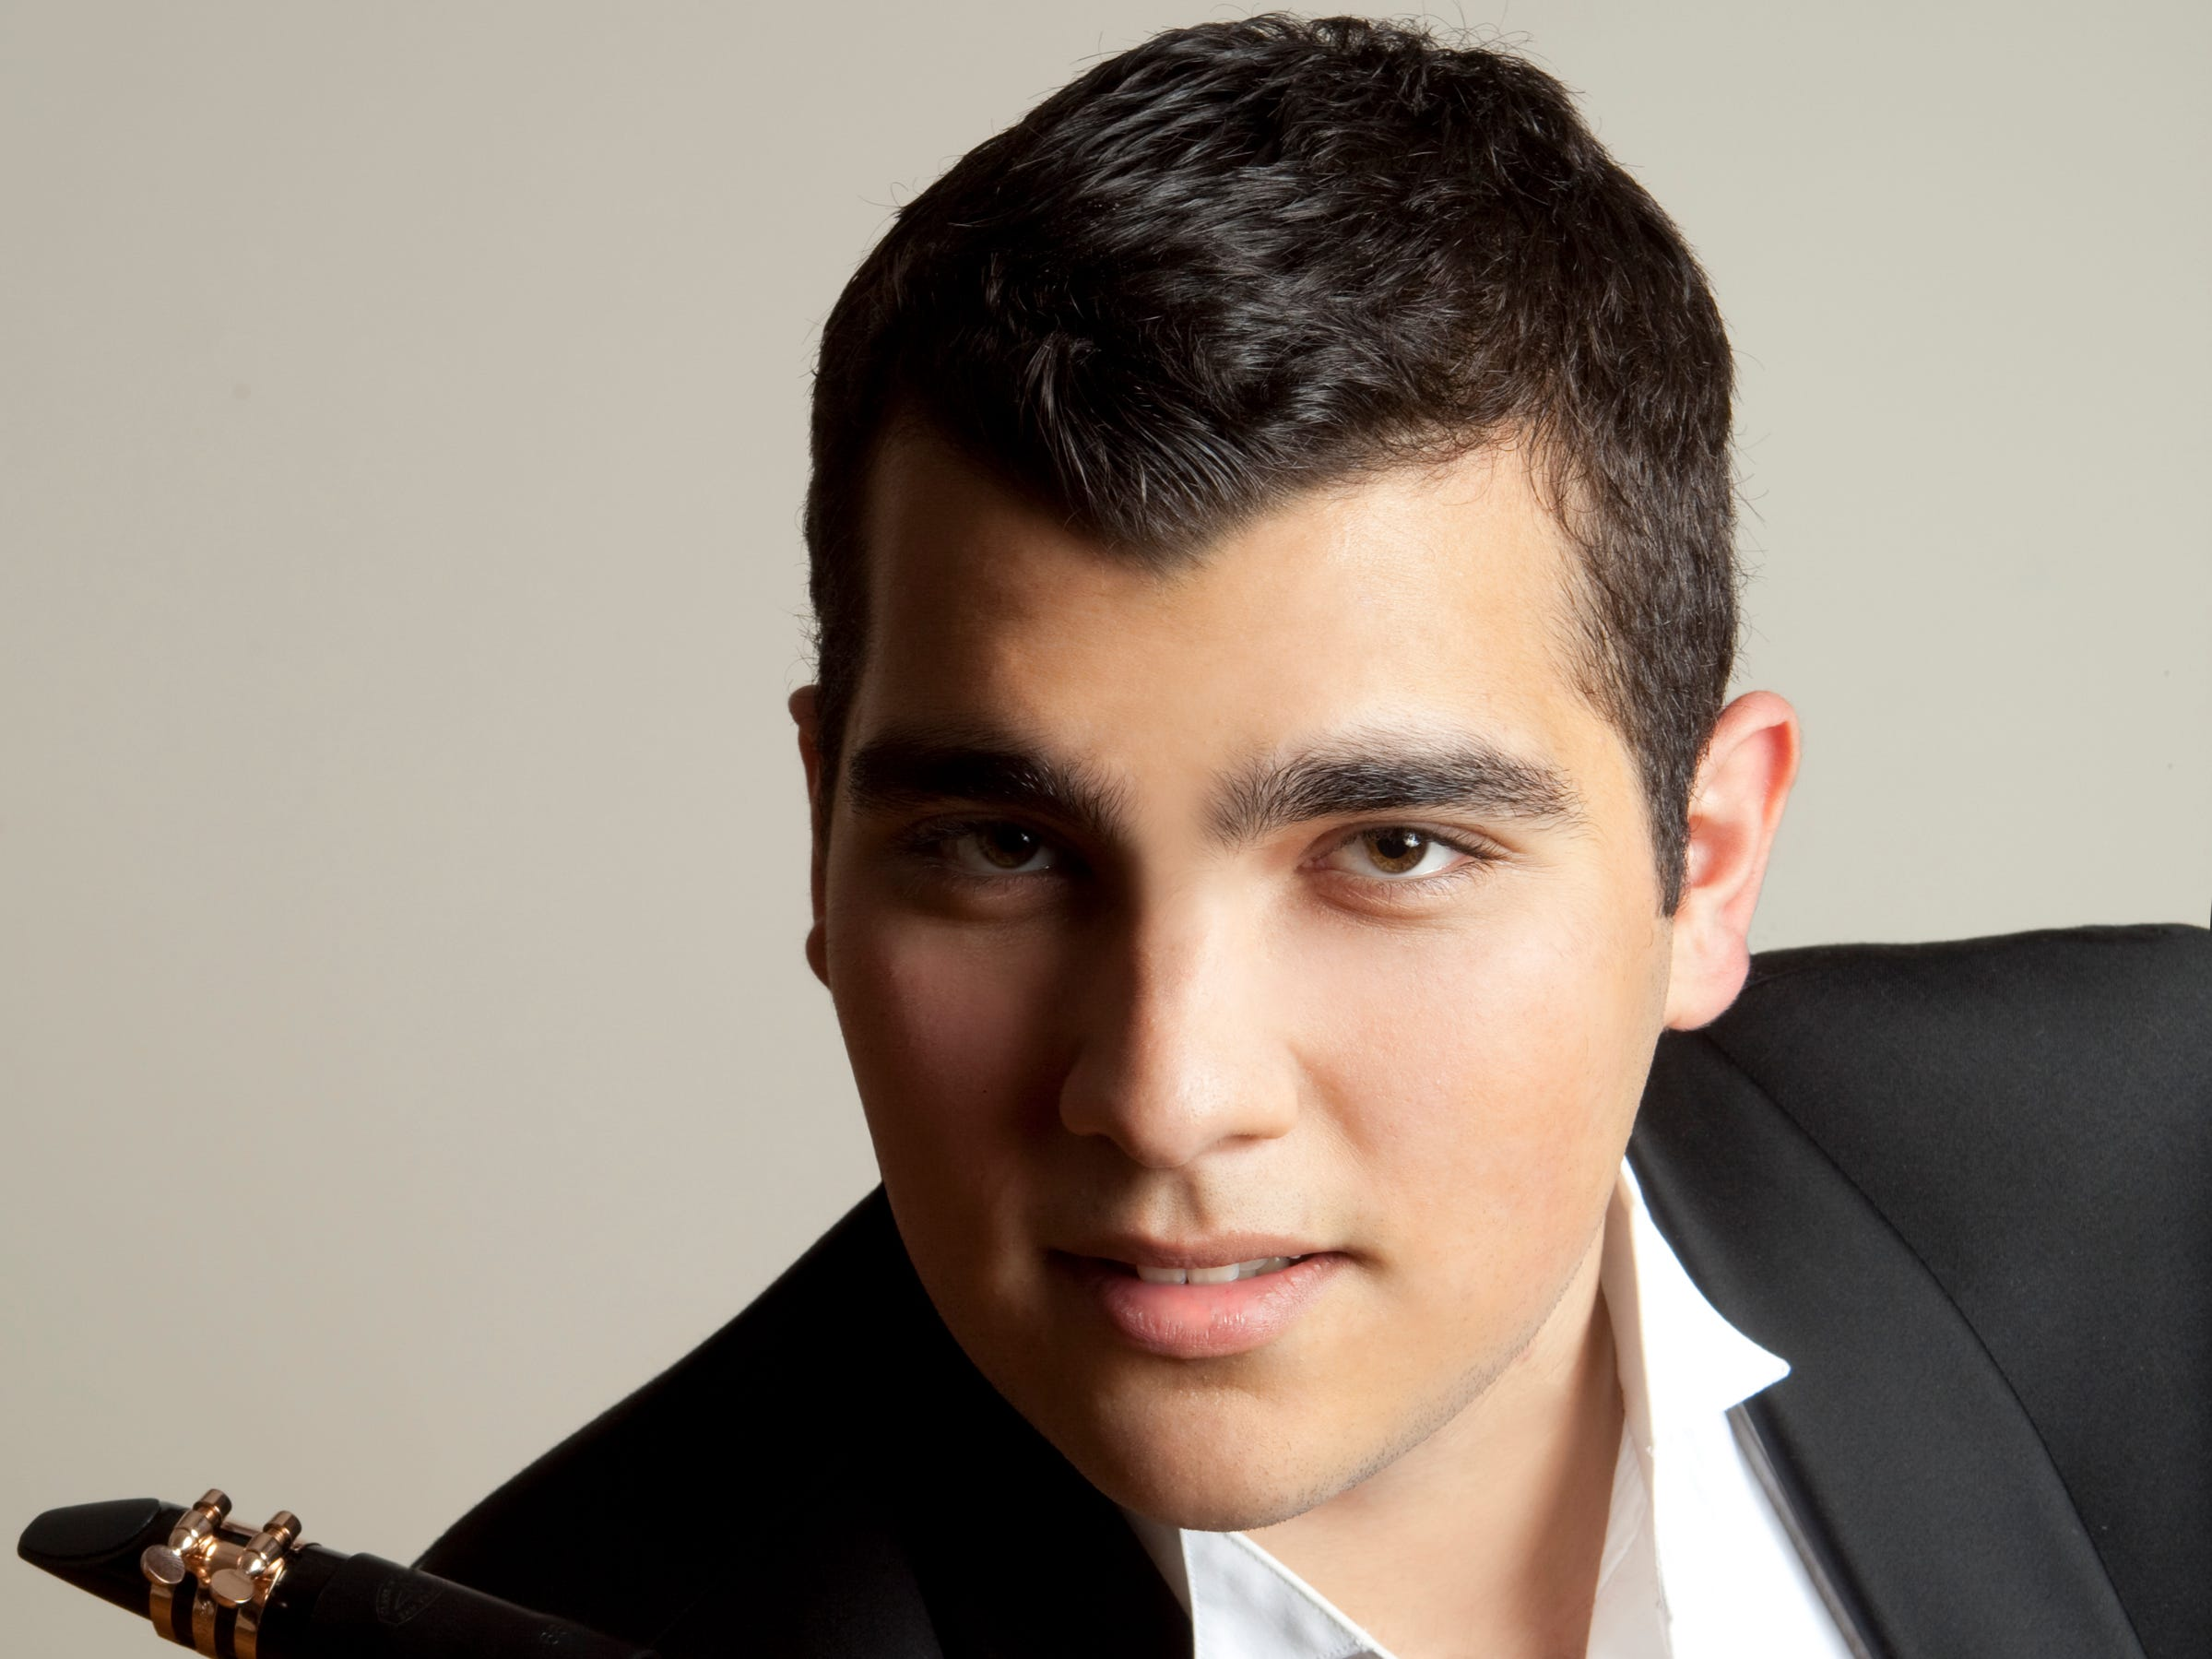 Clarinetist Narek Arutyunian will perform with pianist Christopher Goodpasture at the season's first Chamber On The Mountain concert Sunday in Ojai.